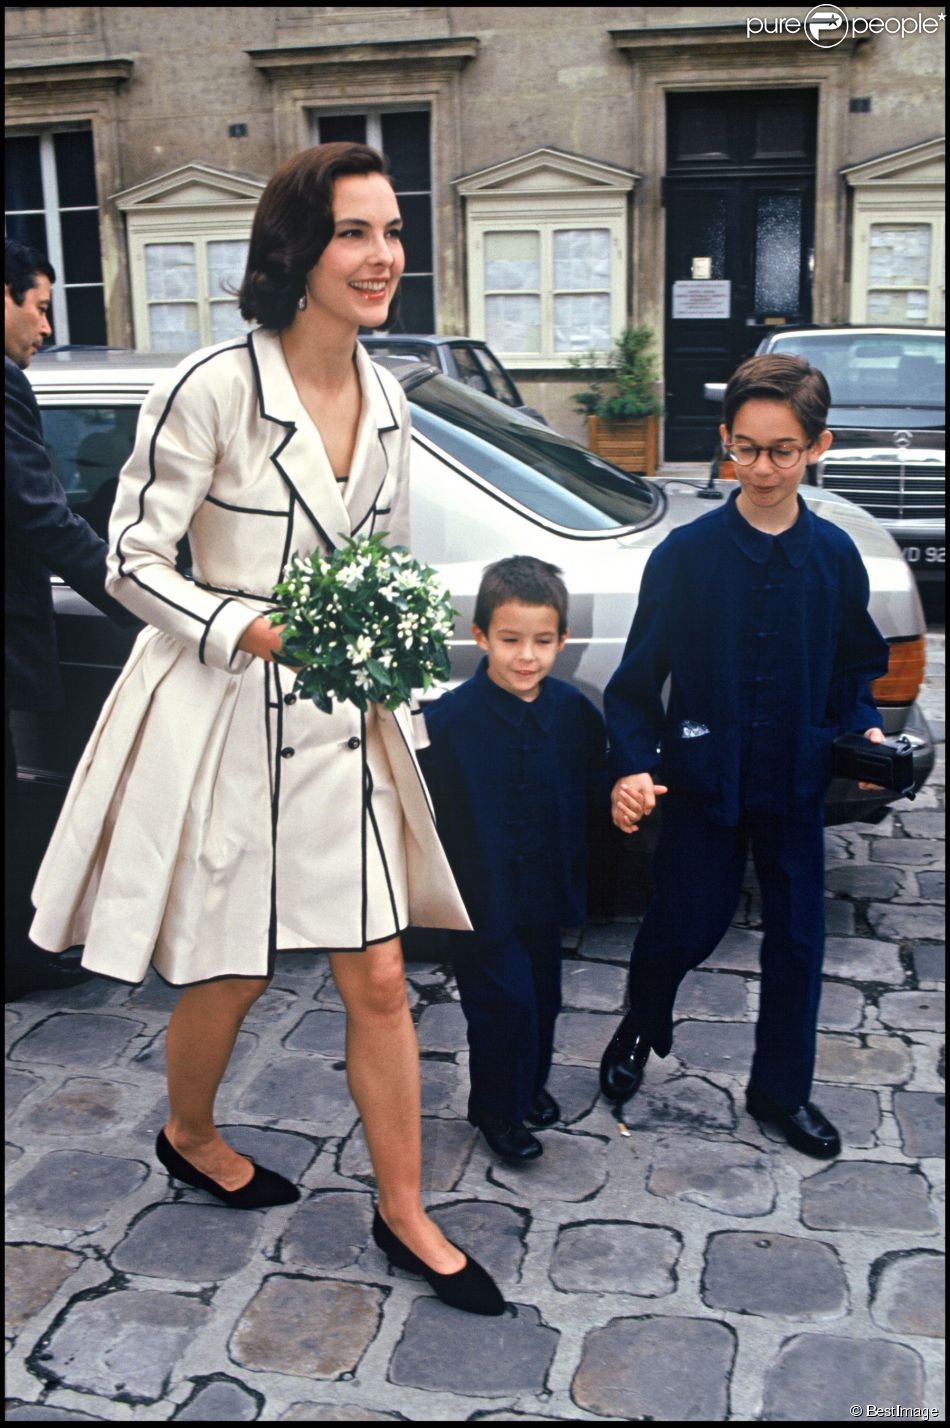 1000 images about carole bouquet on pinterest coupe chanel and for your eyes only - Carole Bouquet Mariage 1991